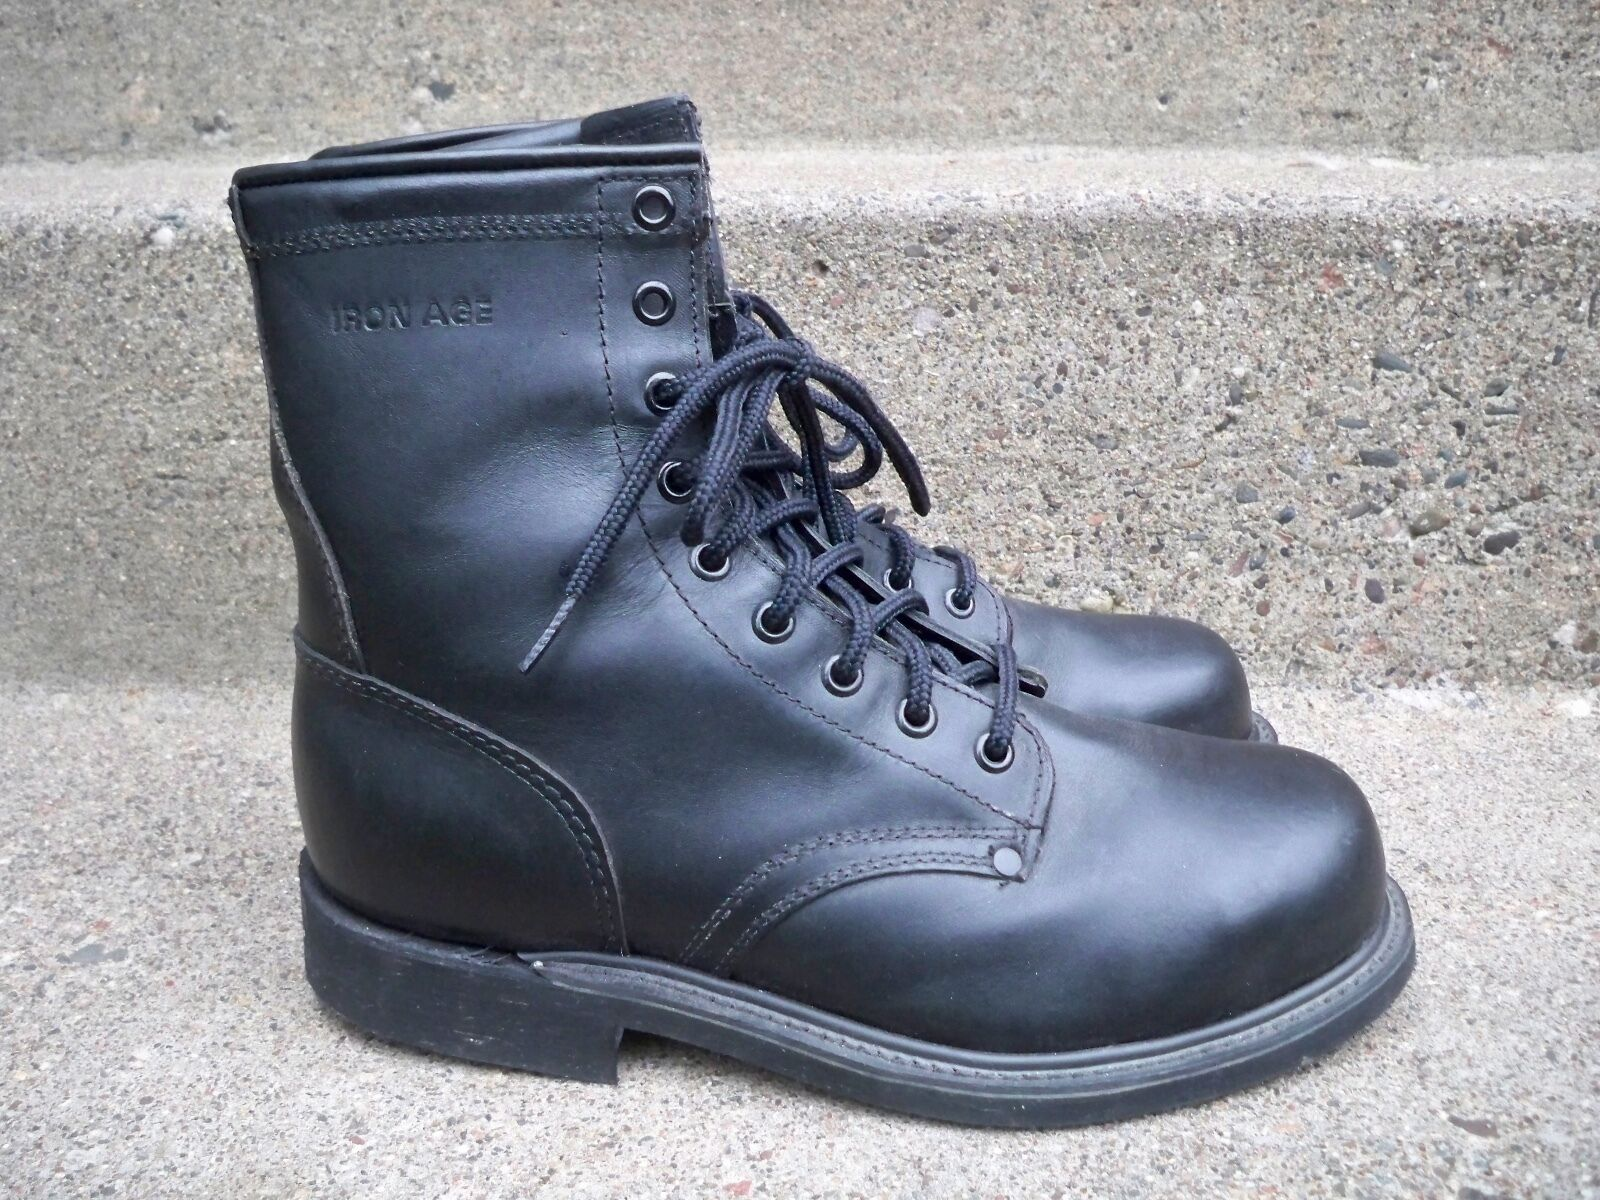 Iron Age Black Leather Men's Work Riding Biker Motorcycle Steel Toe Boots 7.5 D